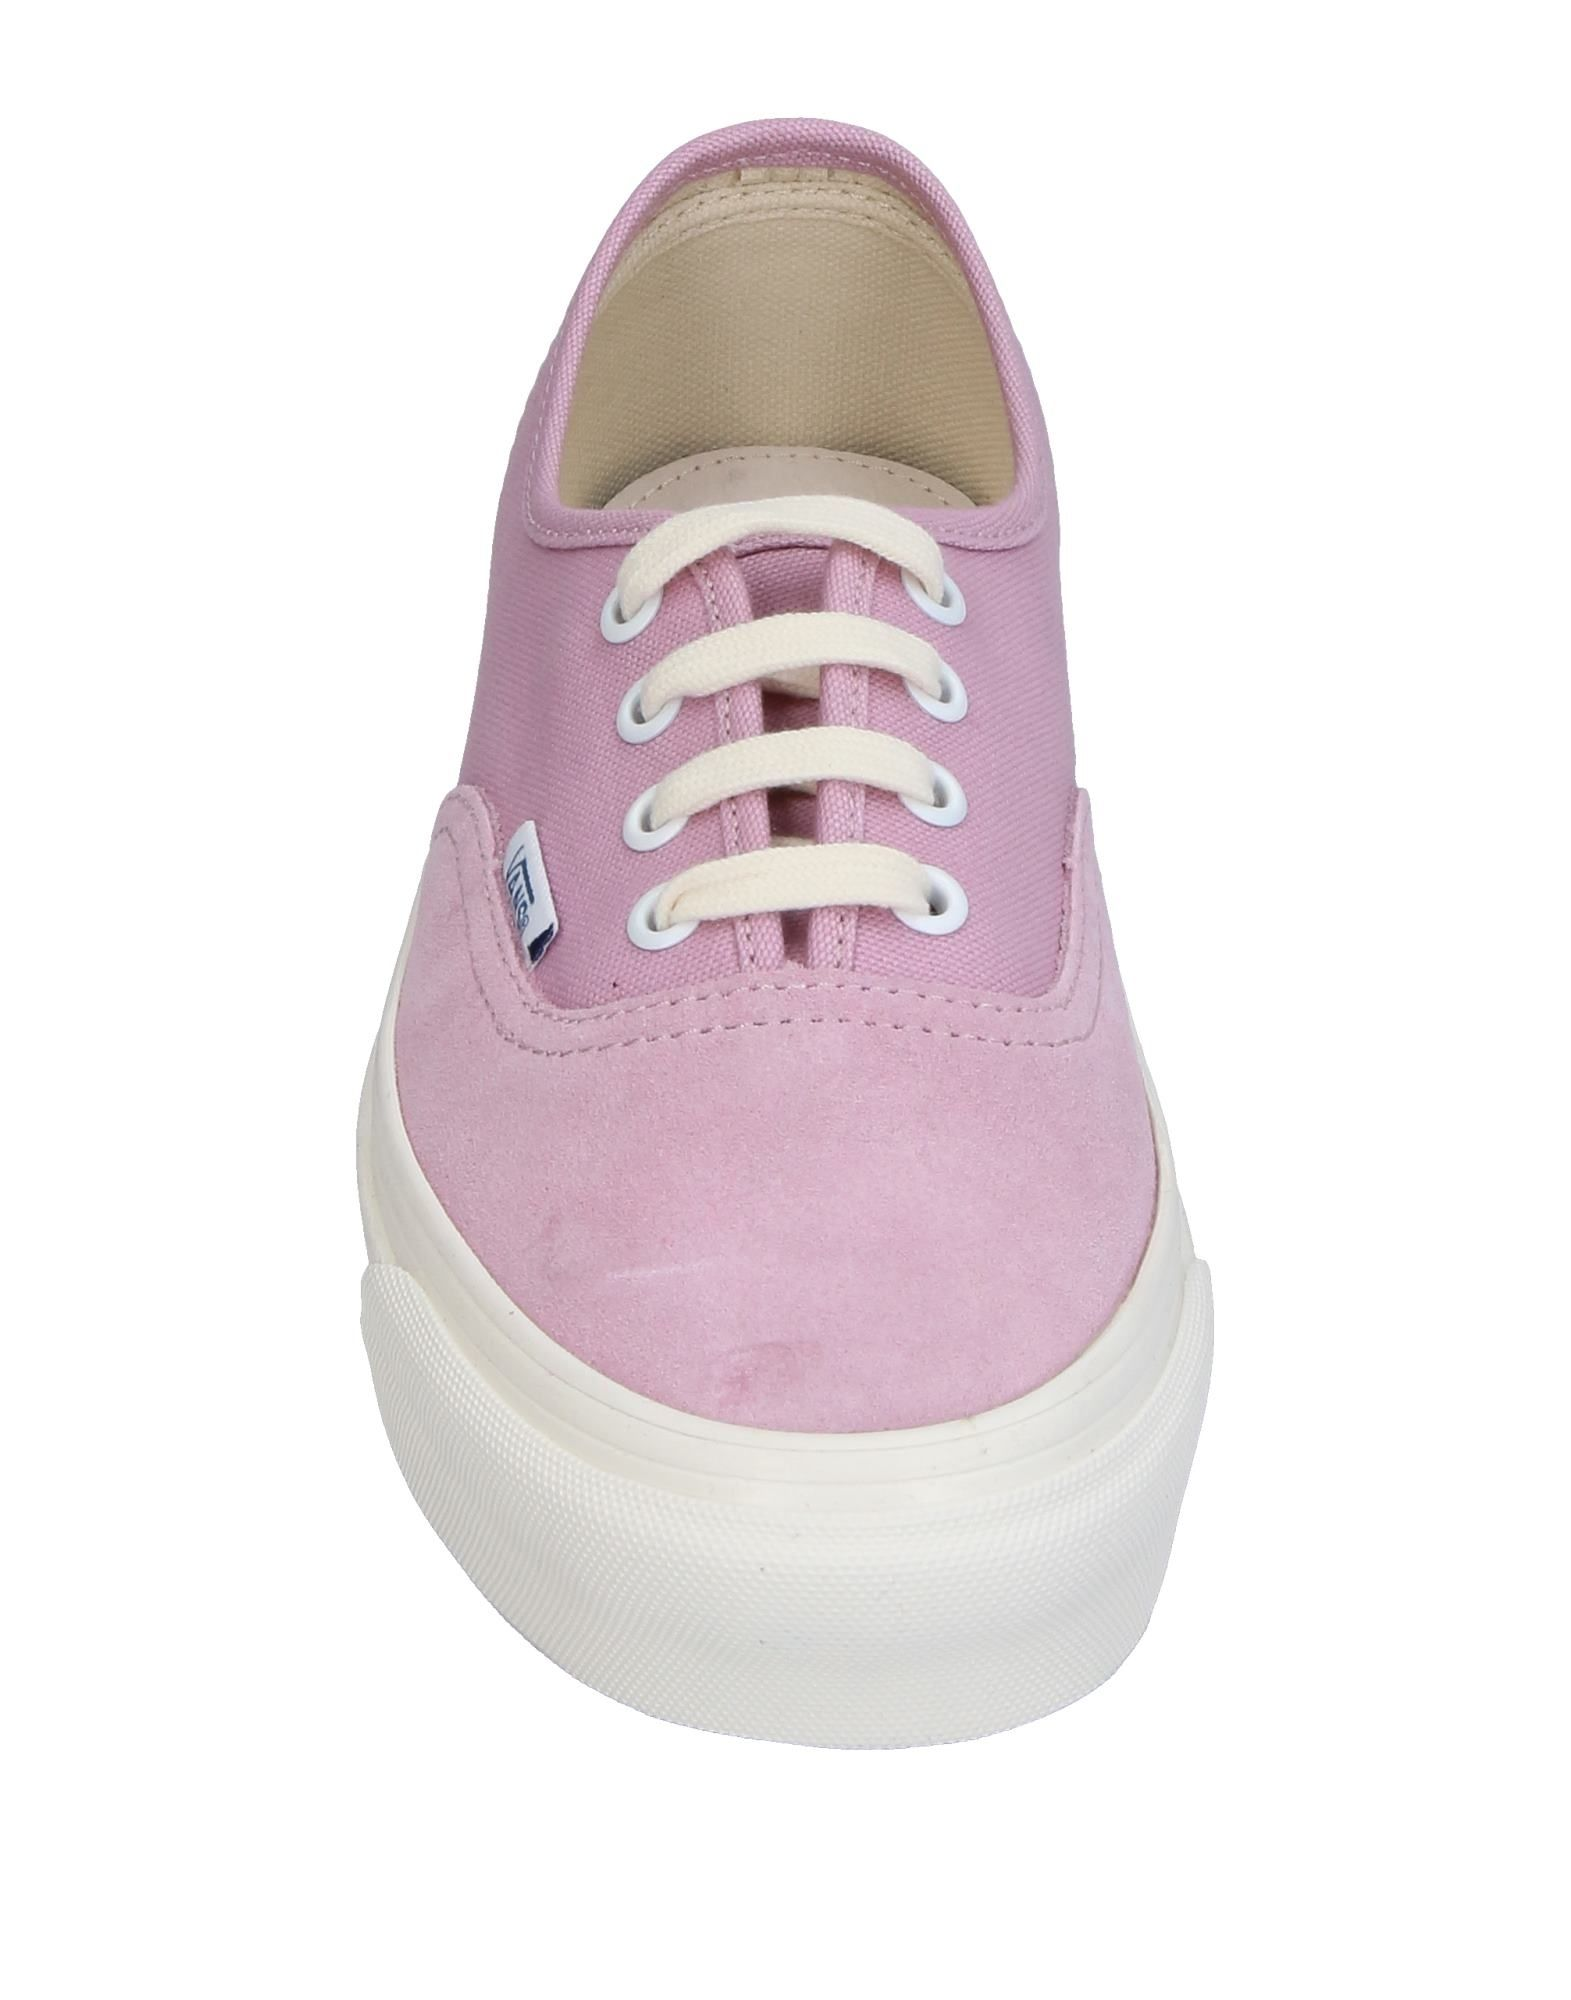 Vans Sneakers Damen  11384259CD   11384259CD 95d8e4